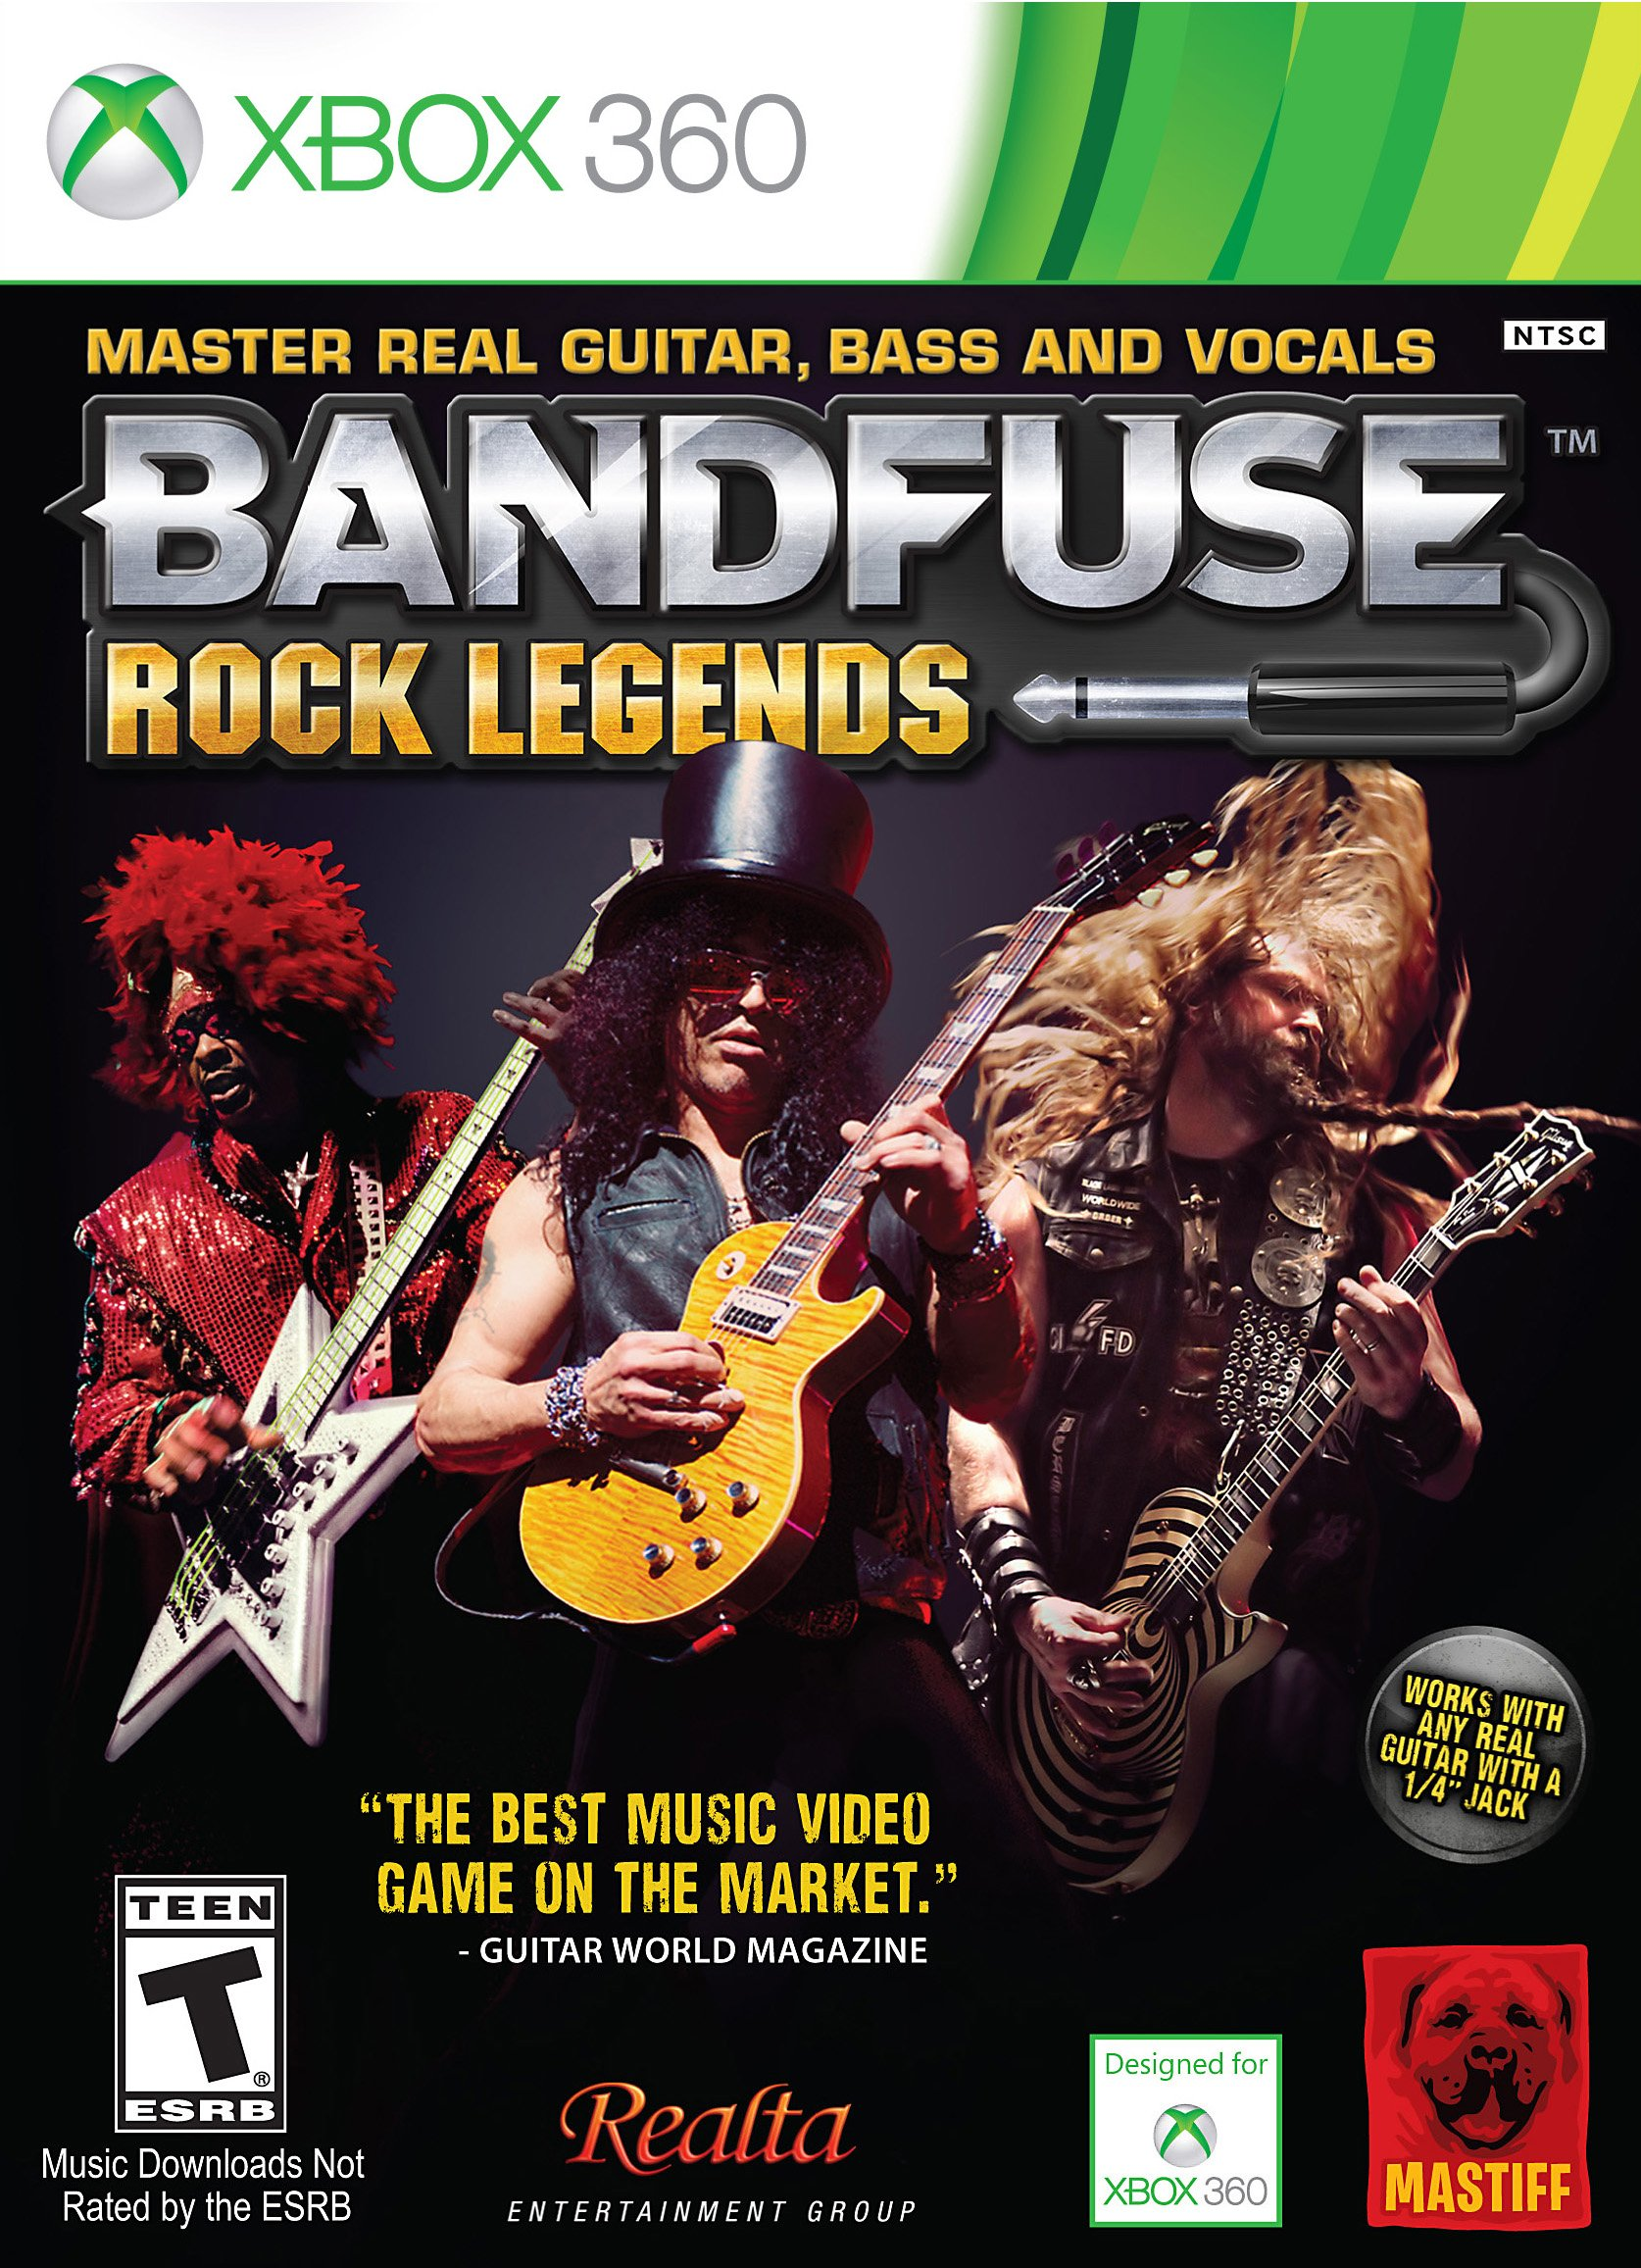 band fuse: rock legends - artist pack release dates